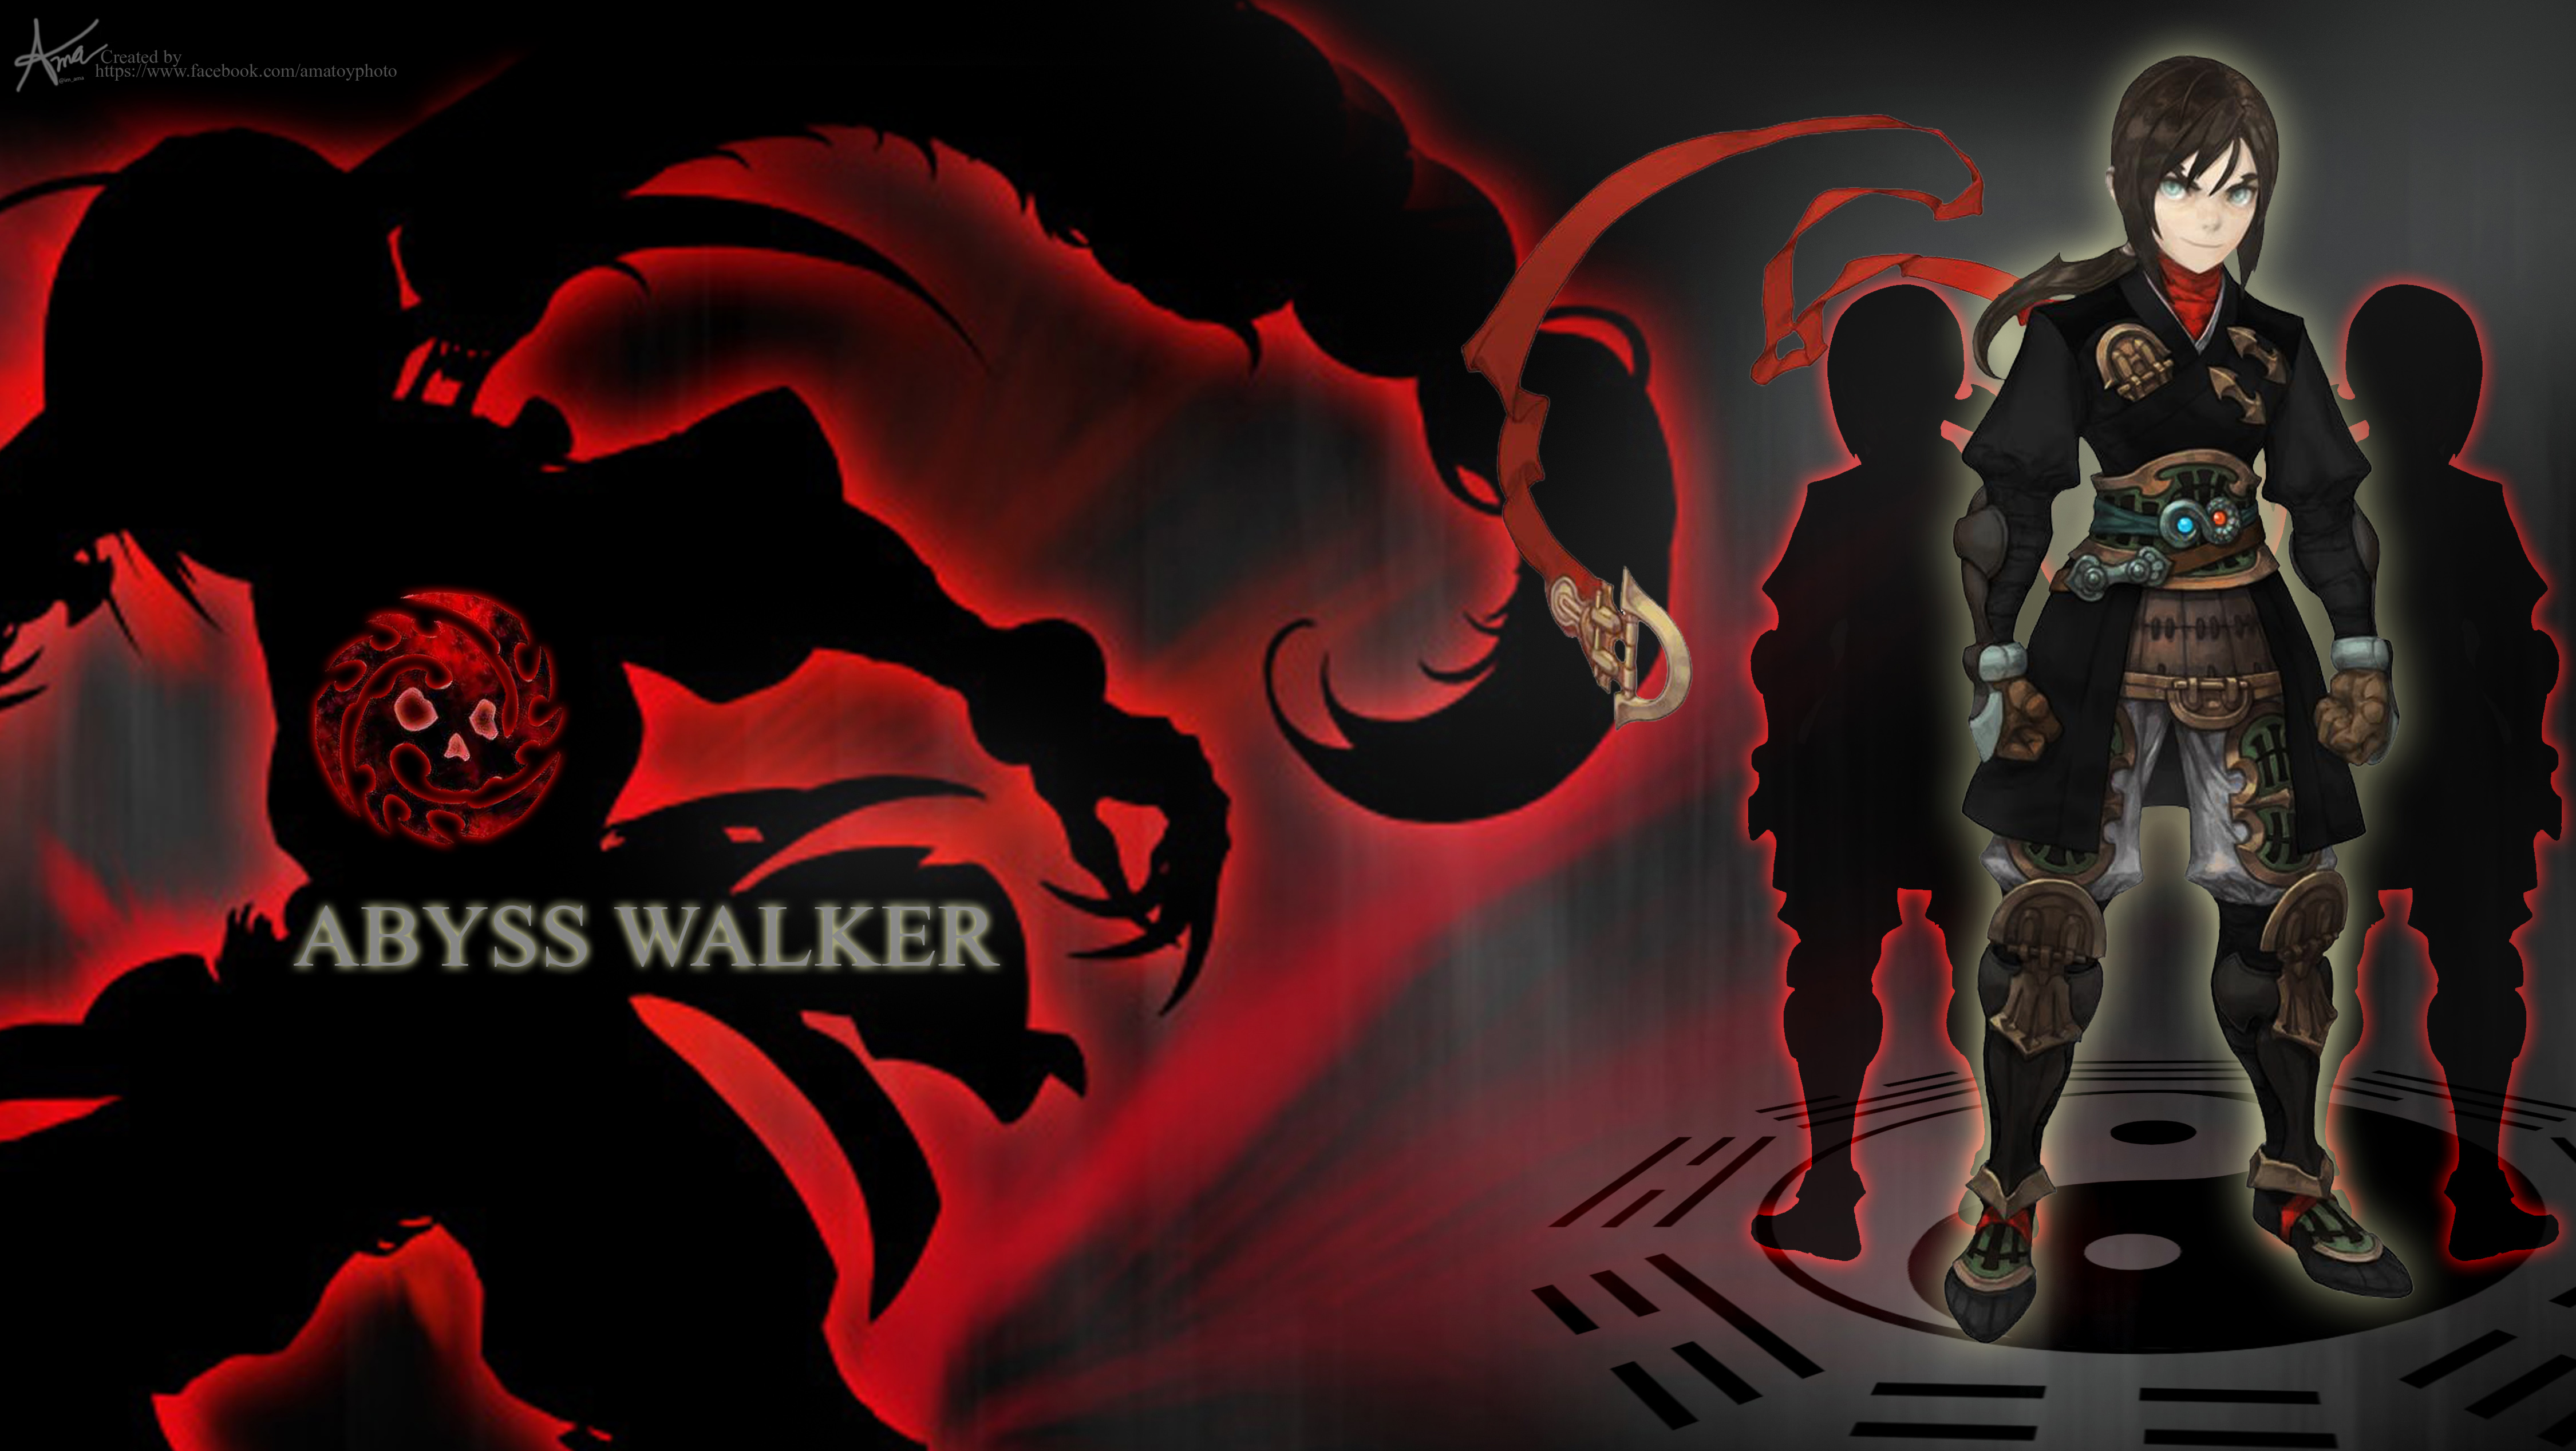 Wallpaper download abyss -  Wallpaper Dragonnest Abyss Walker By Ama Toyphoto